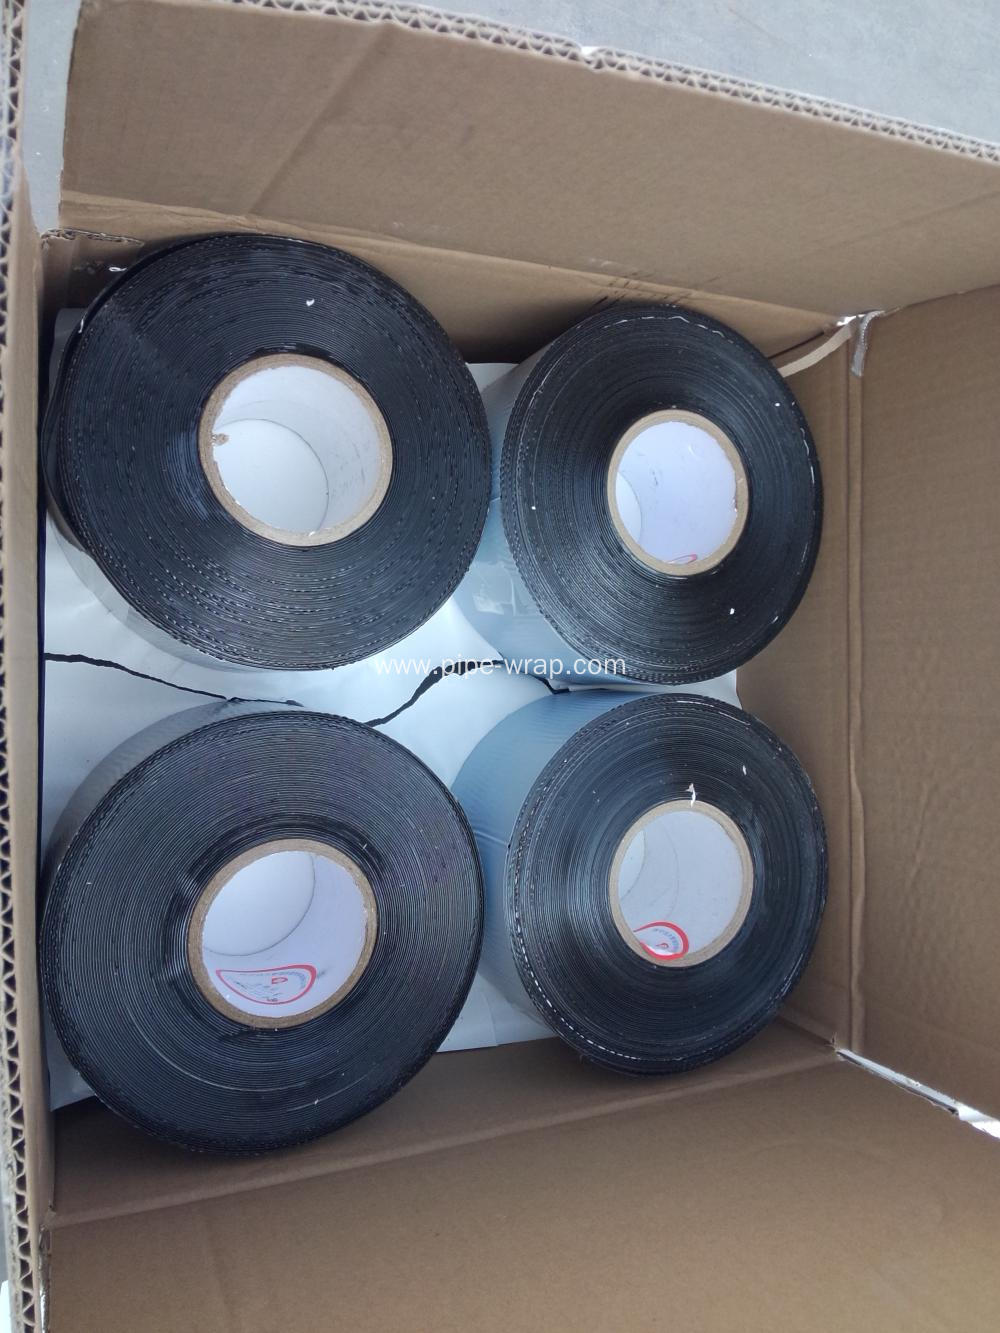 Oil pipeline self adhesive hatch cover tape/bitumen strip for flanges